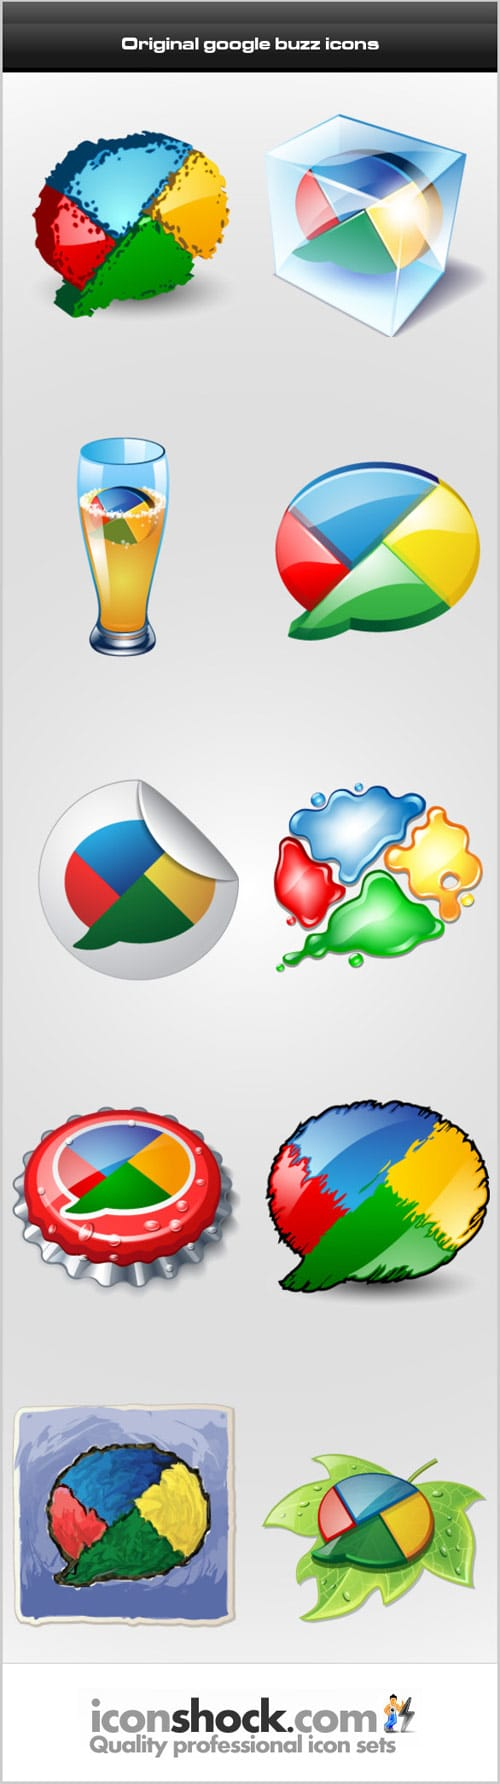 Original google buzz icons